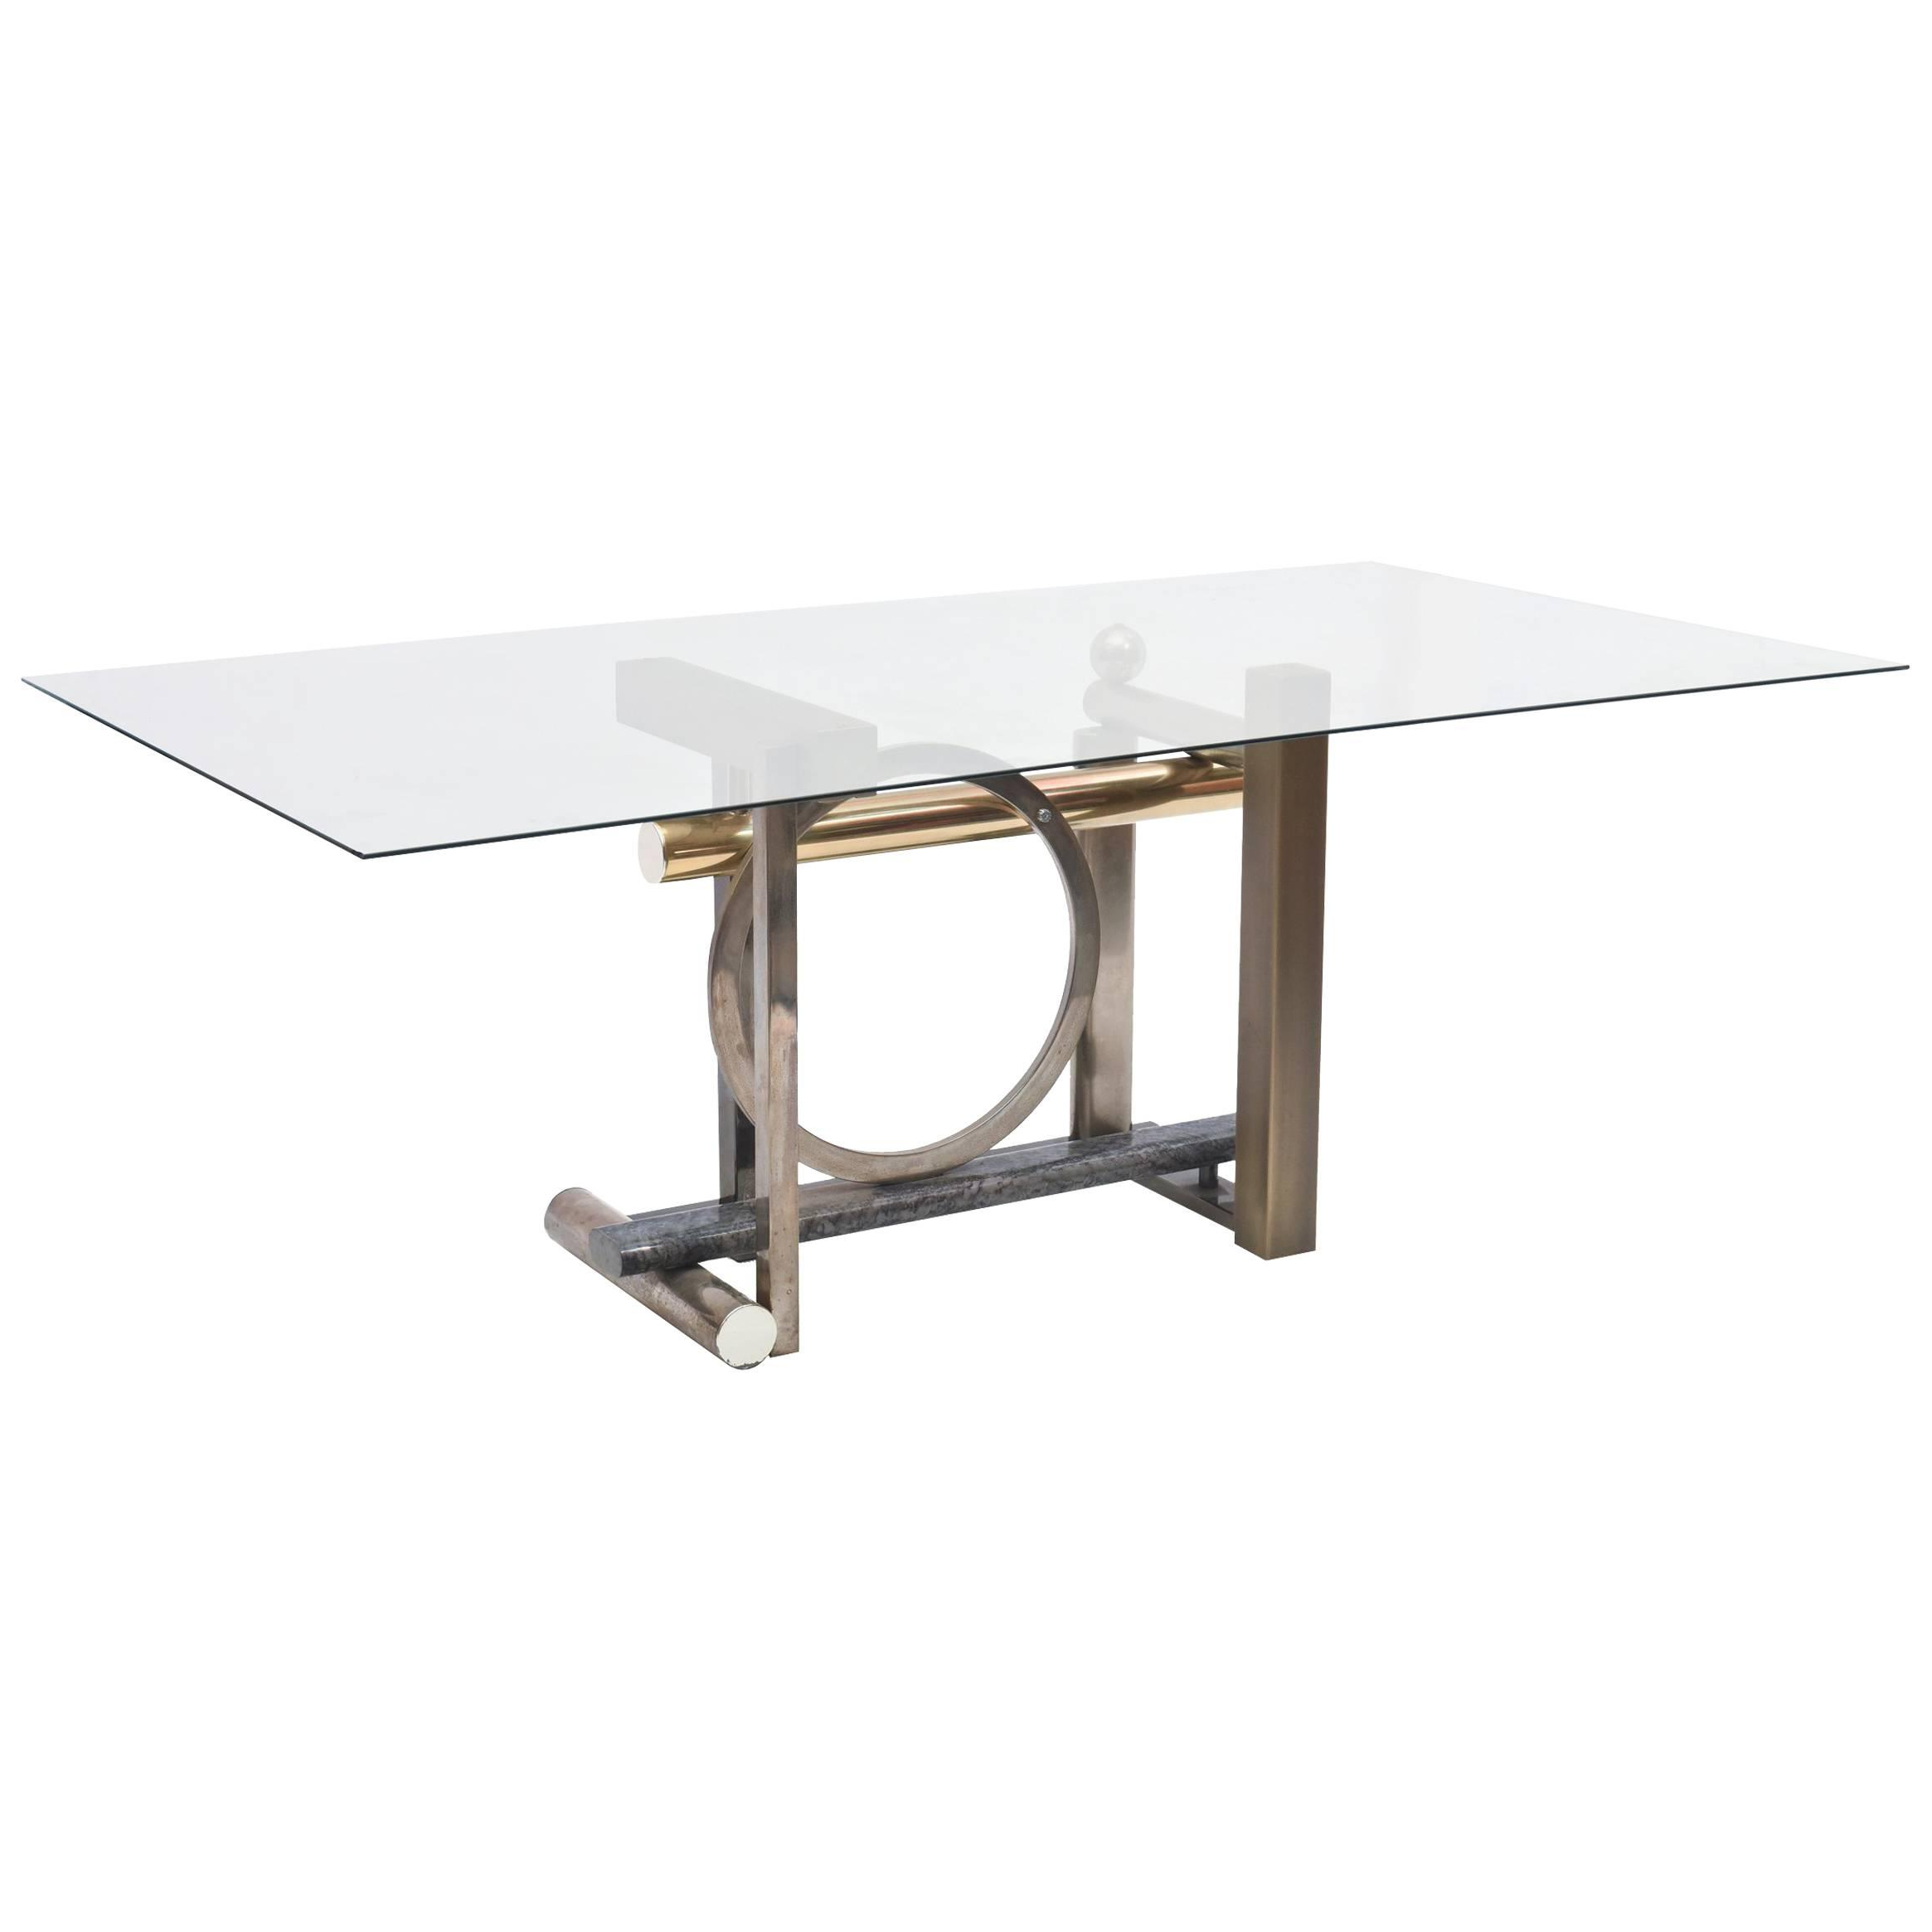 Design Institute America Furniture – 149 For Sale At 1stdibs In Mix Leather Imprint Metal Frame Console Tables (View 9 of 20)